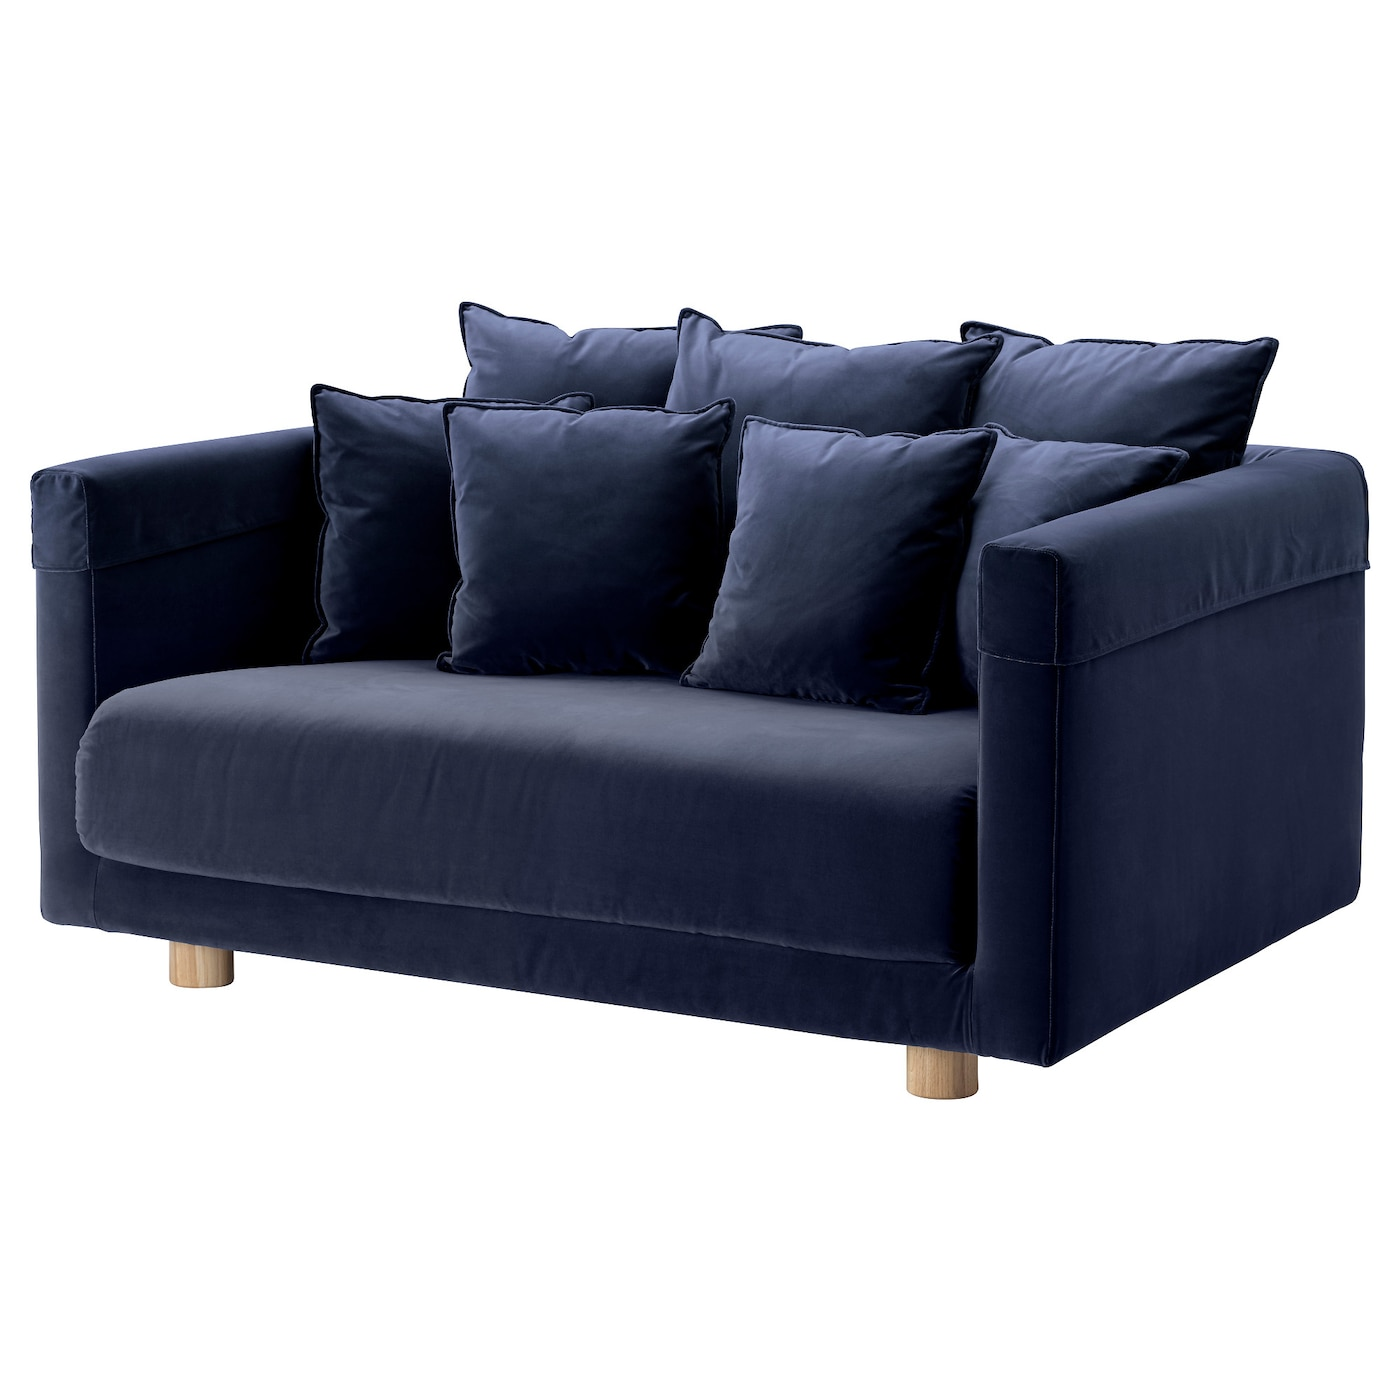 Sofa ikea  STOCKHOLM 2017 Two-seat sofa Sandbacka dark blue - IKEA